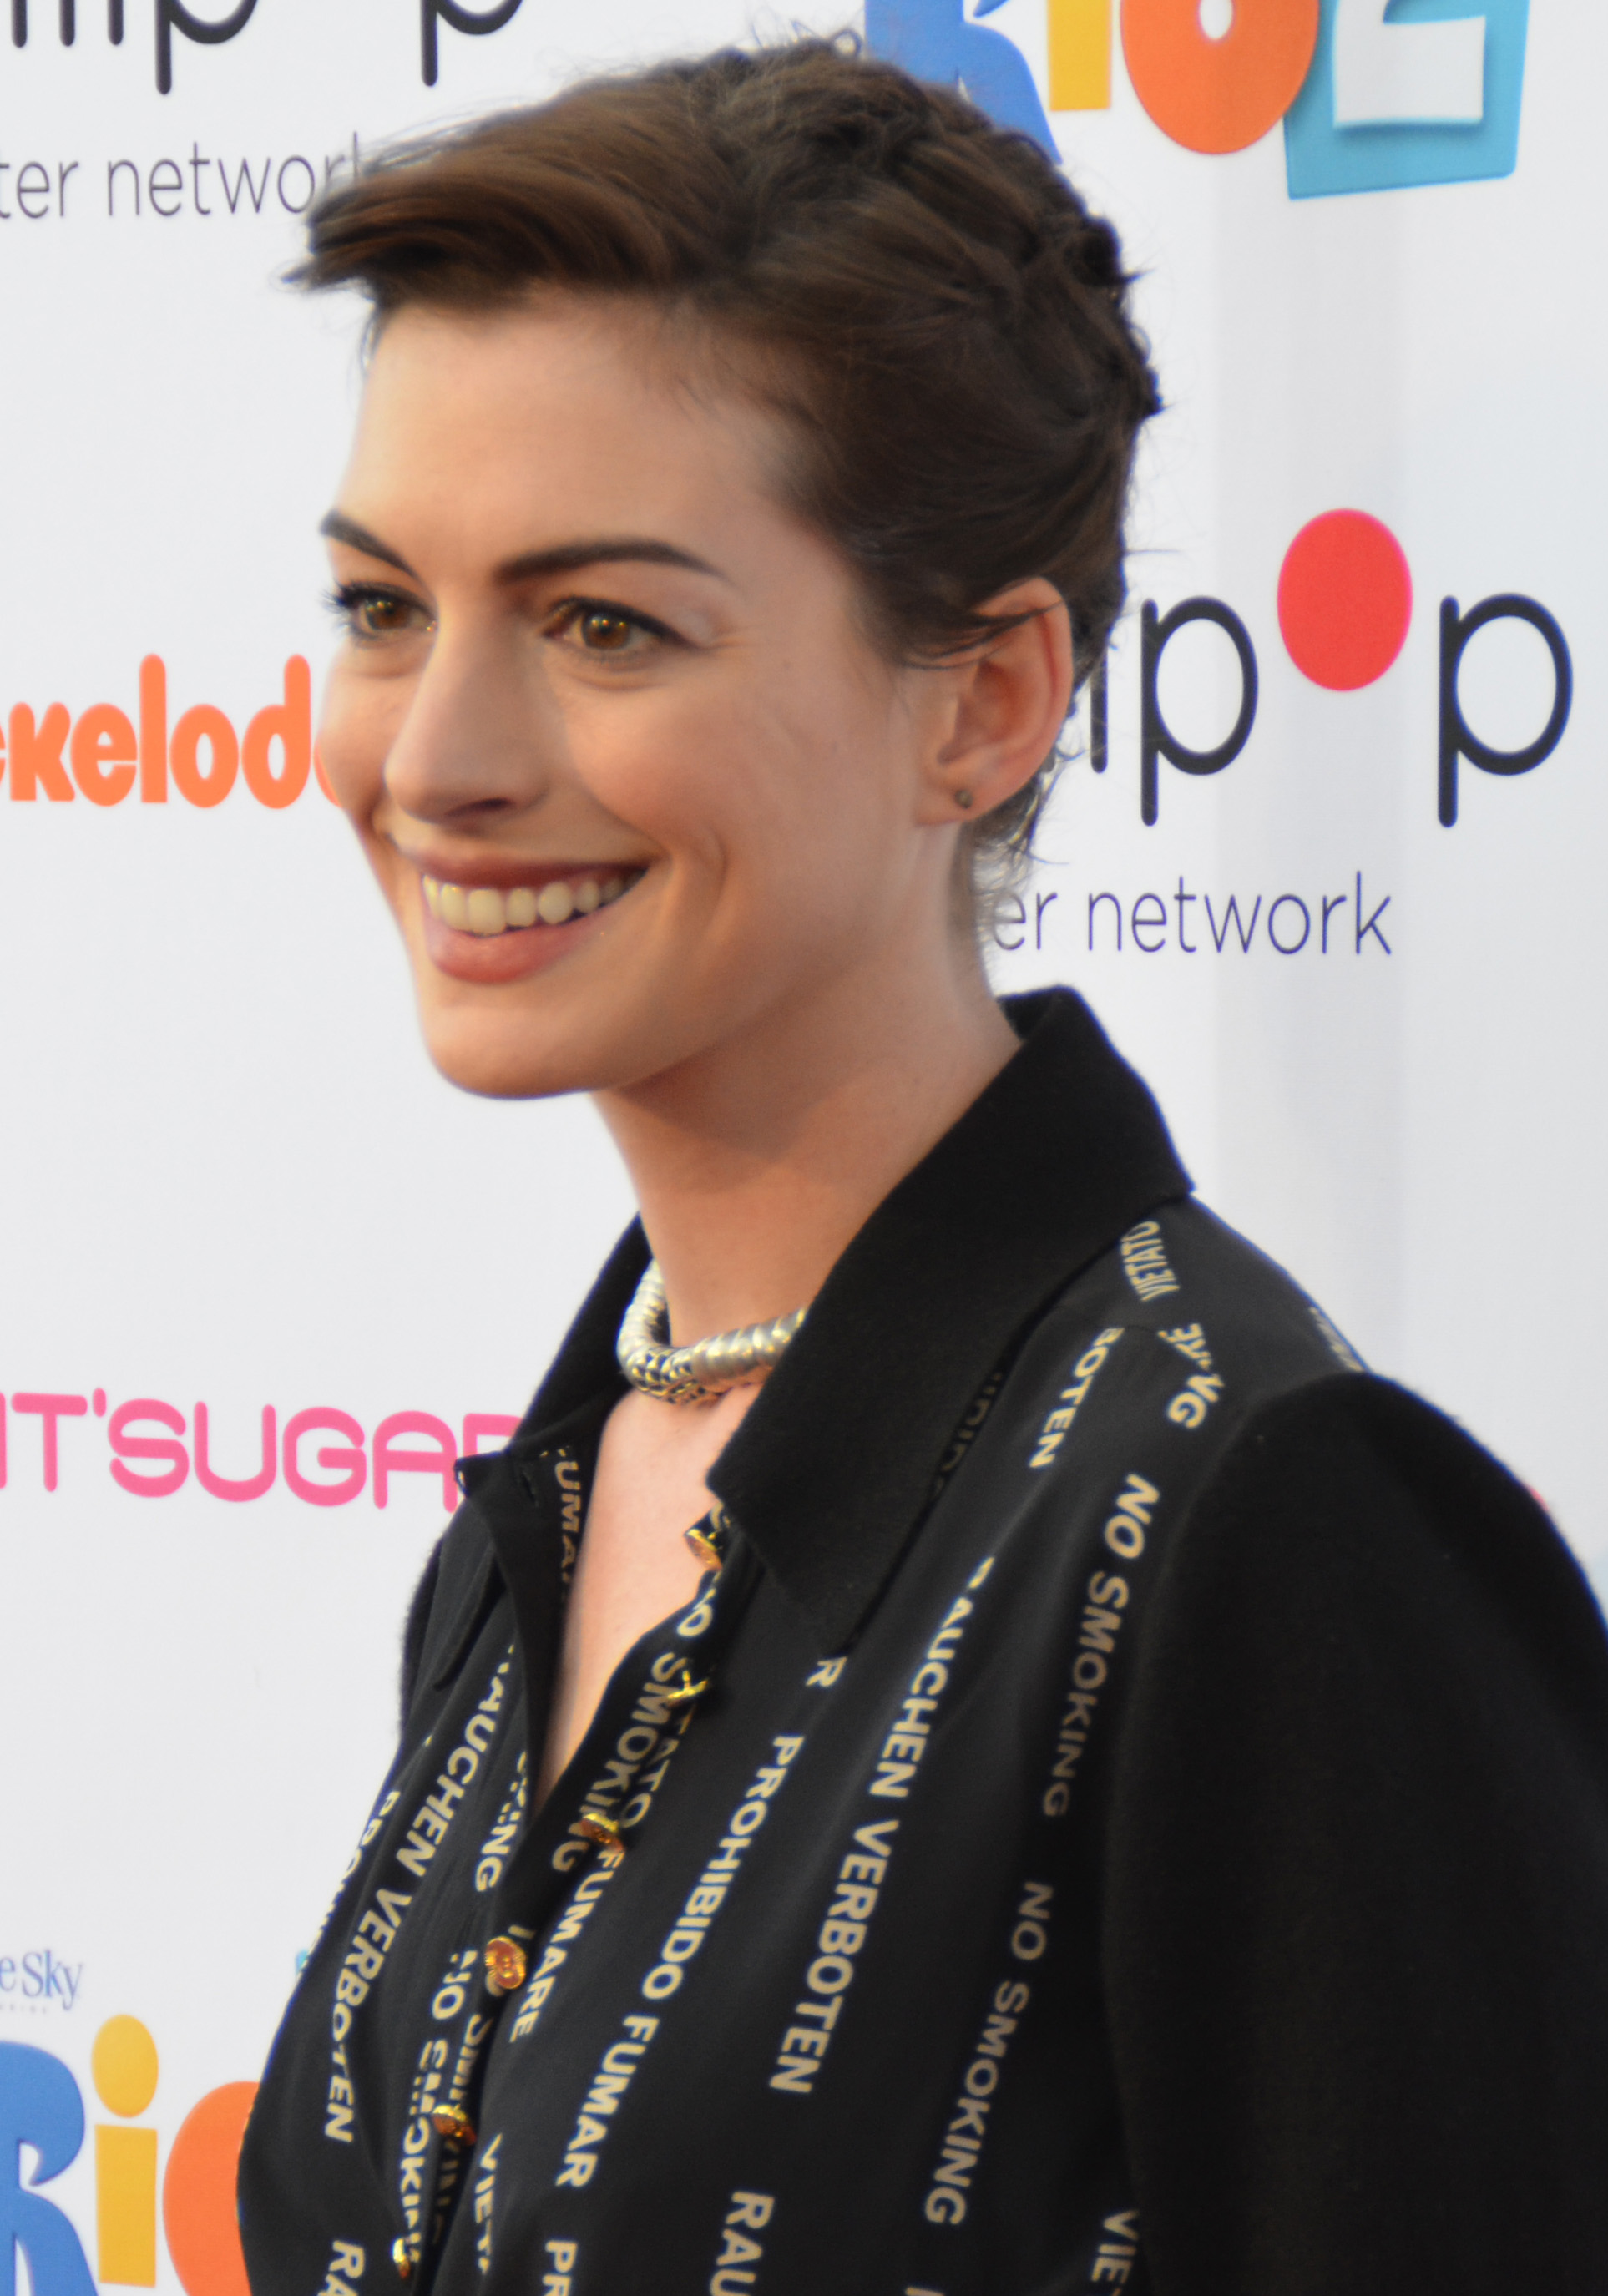 Anne Hathaway Images 2014 photo 27